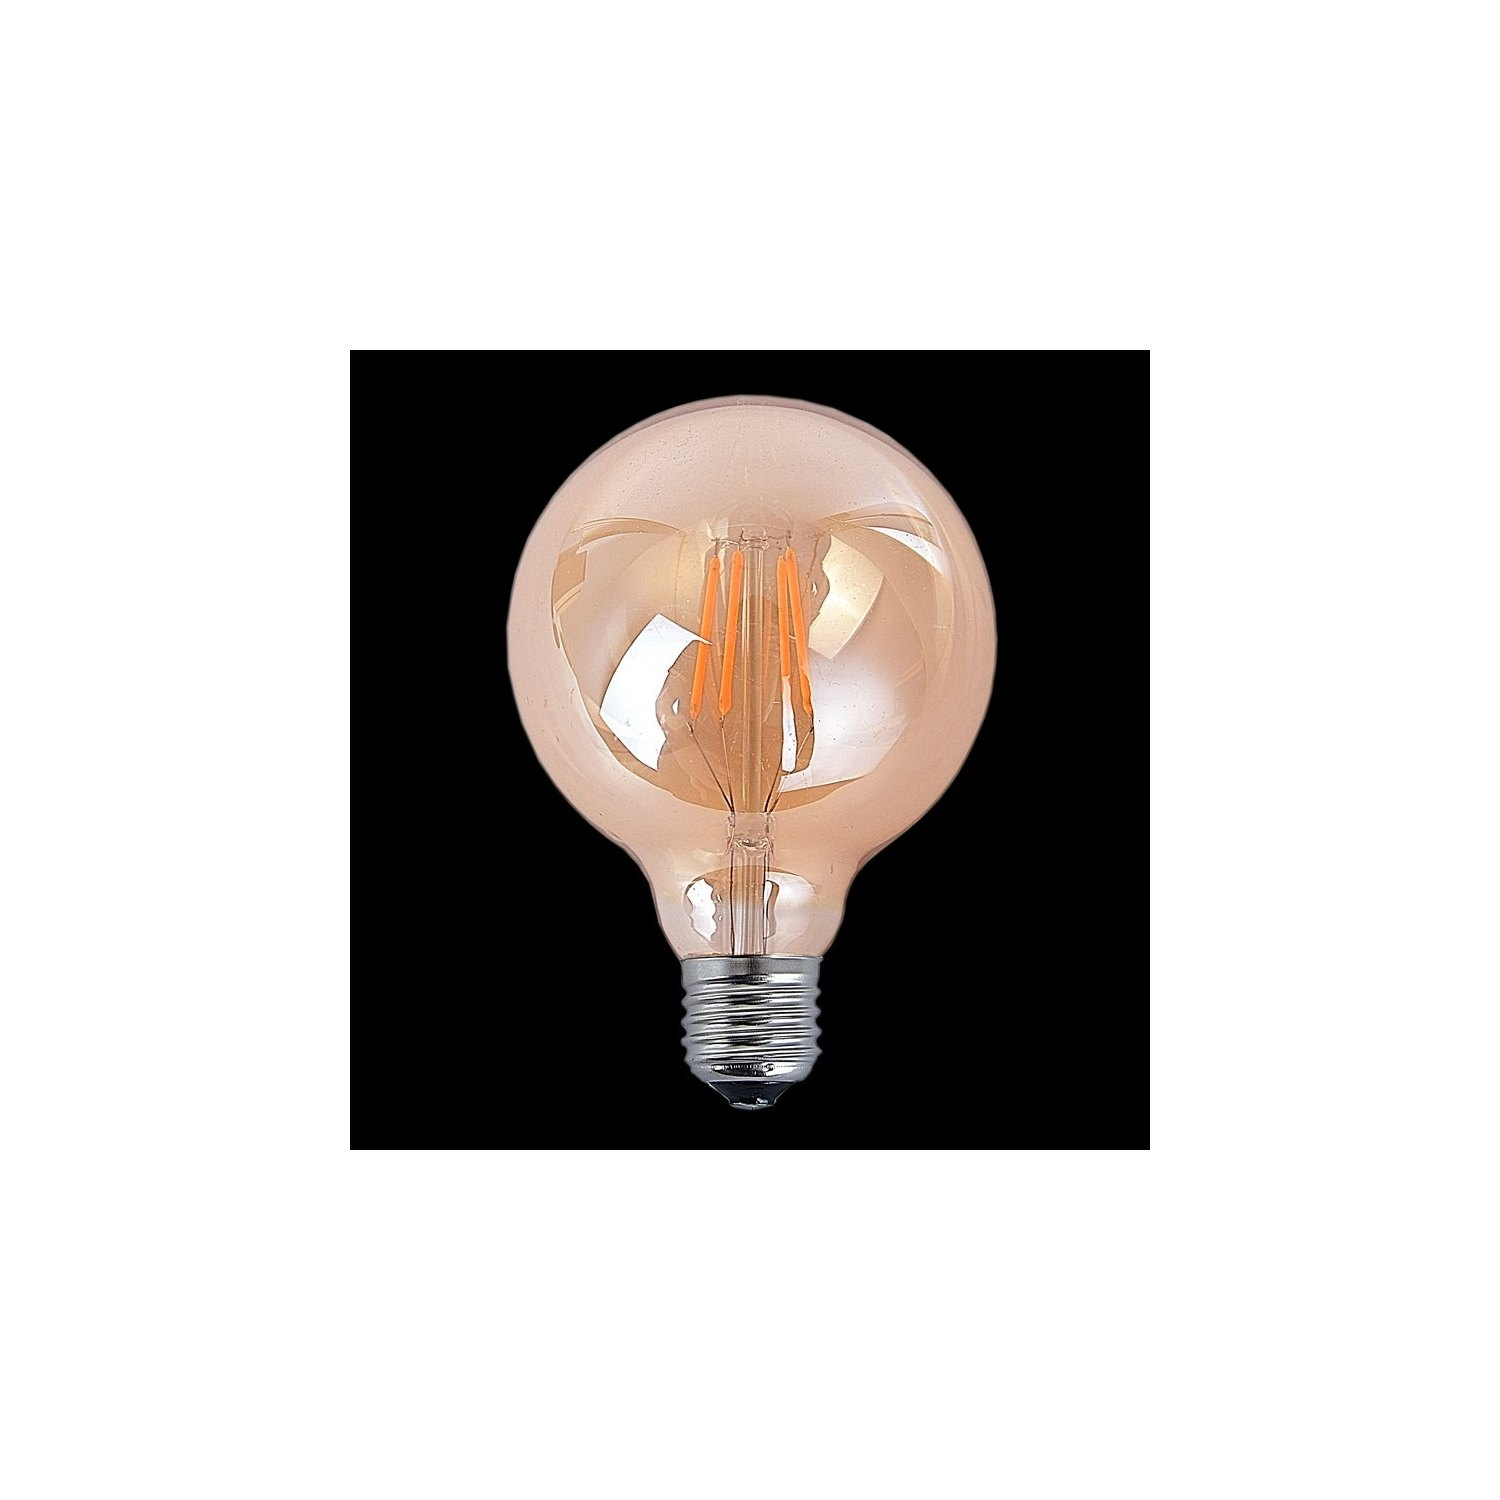 Deco Ampoule Ampoule Led Decorative